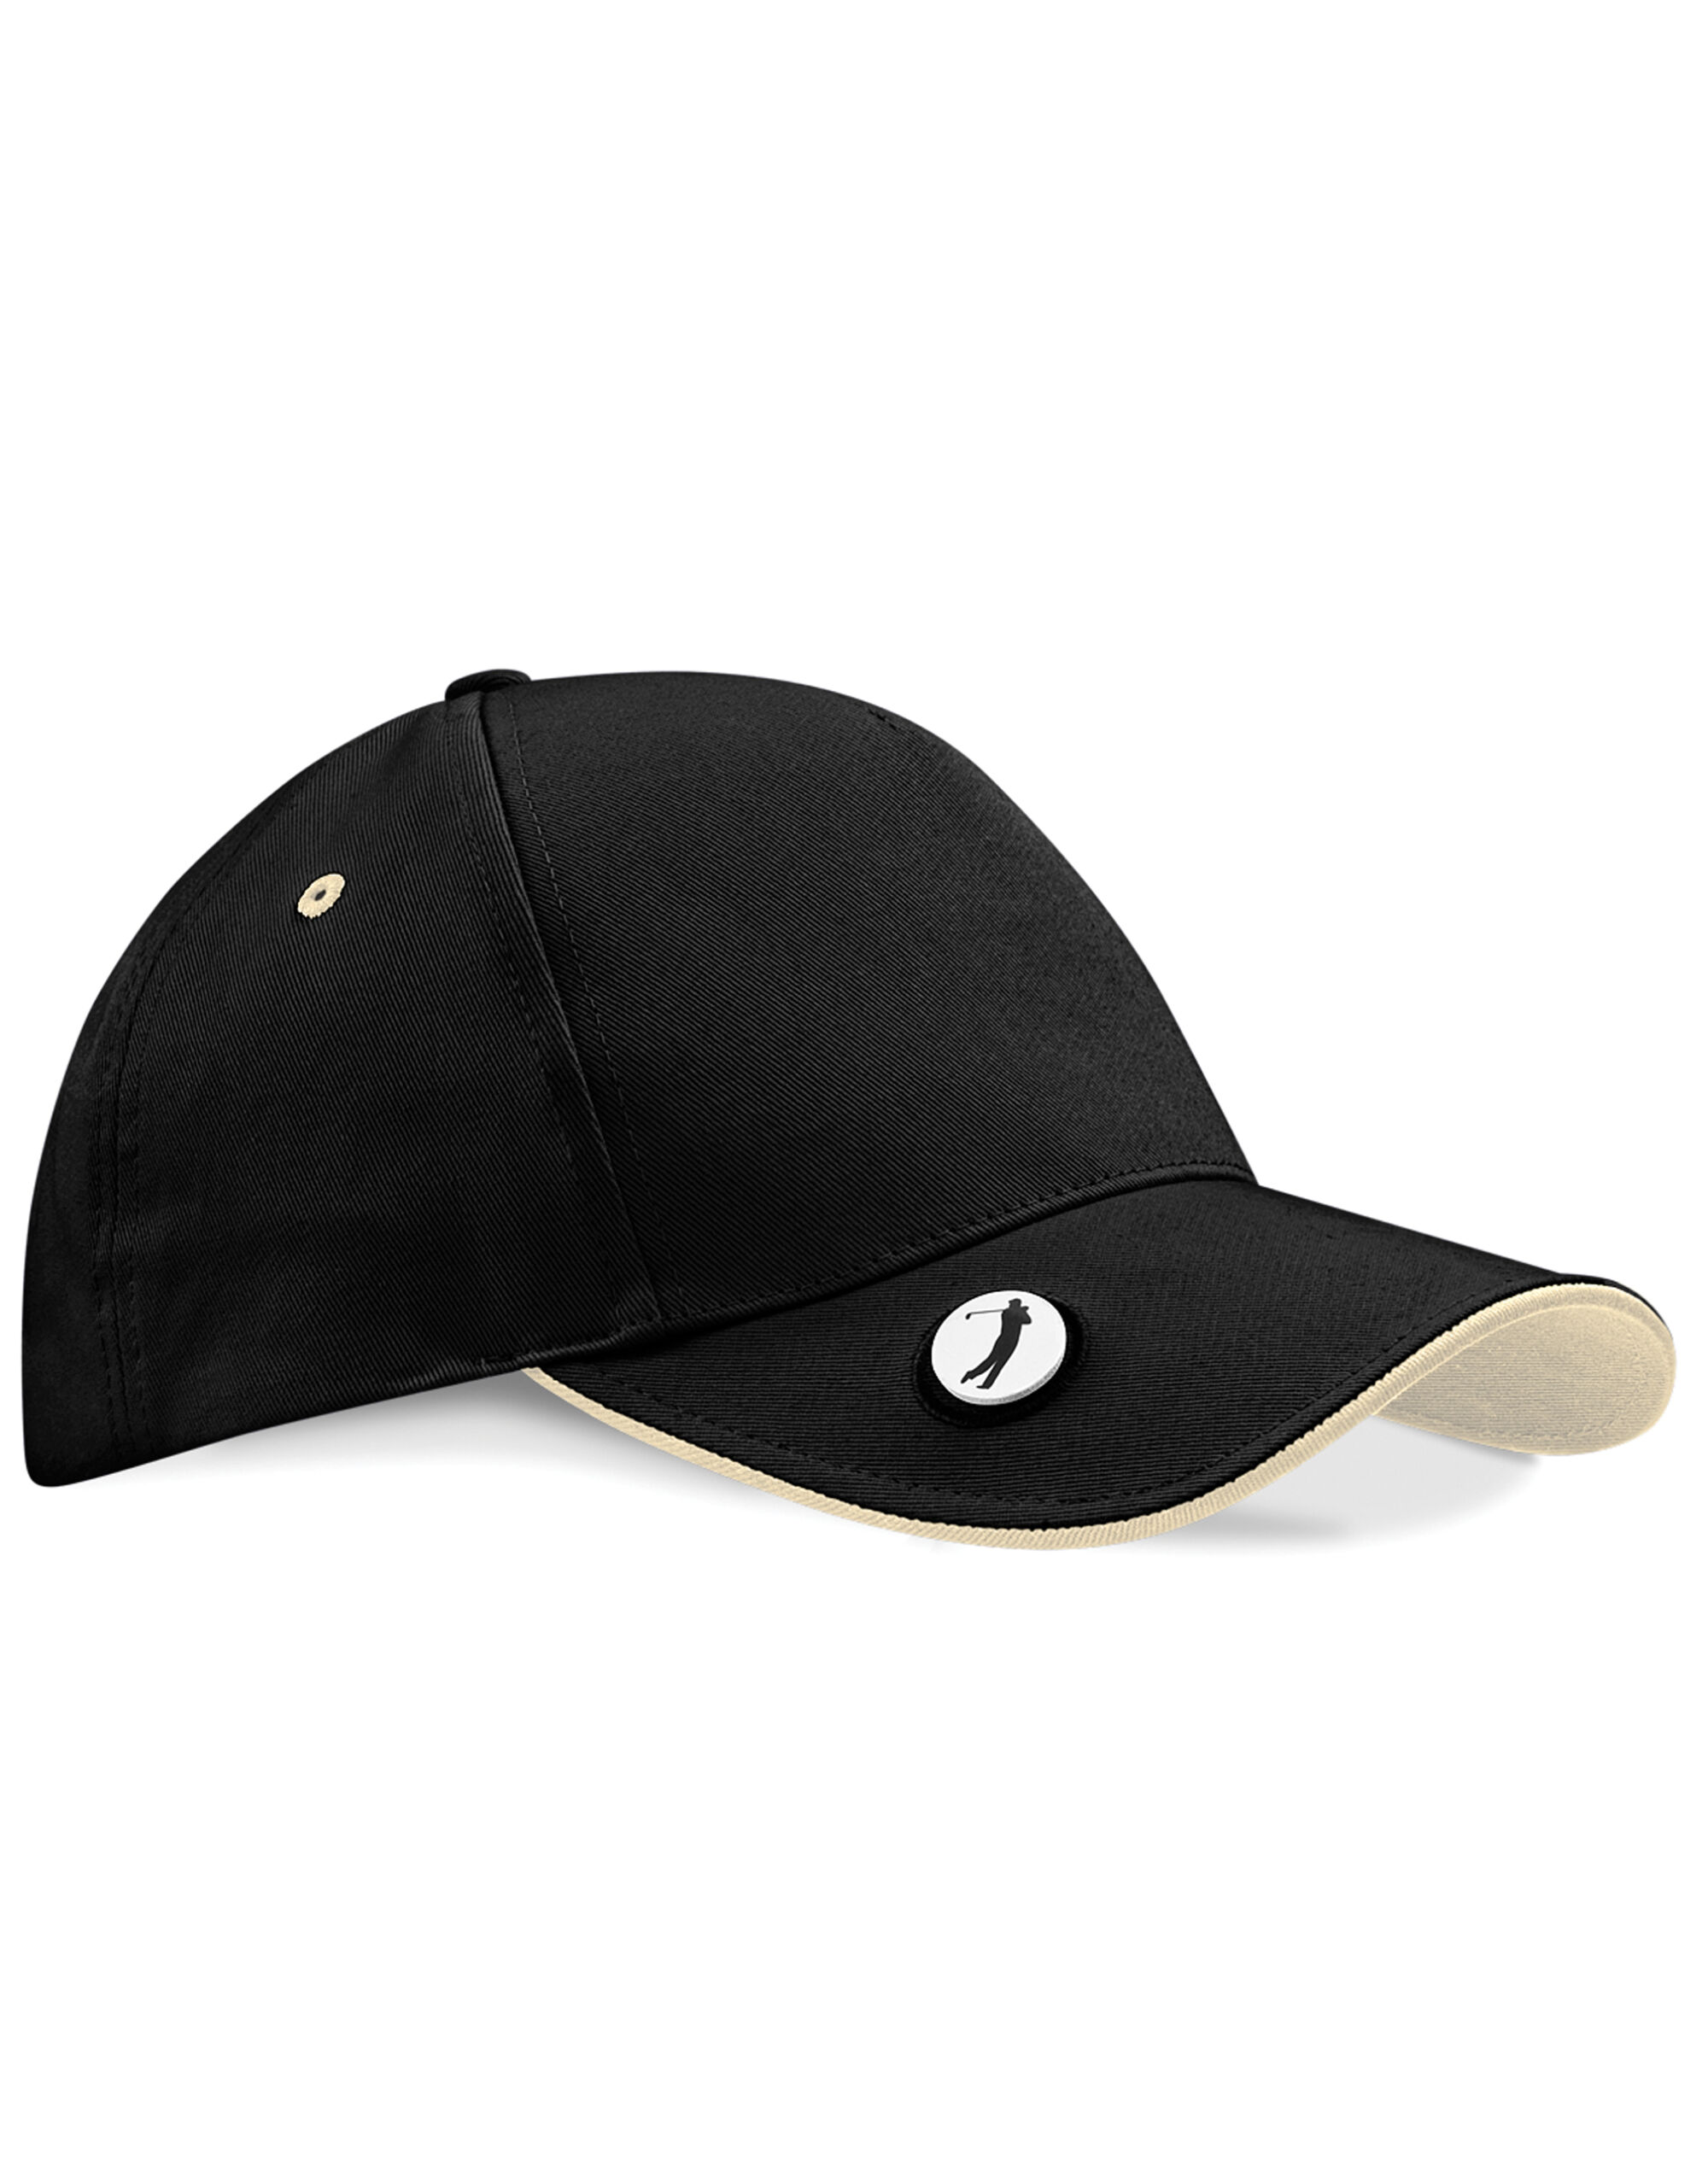 Golf Ball Marker Cap